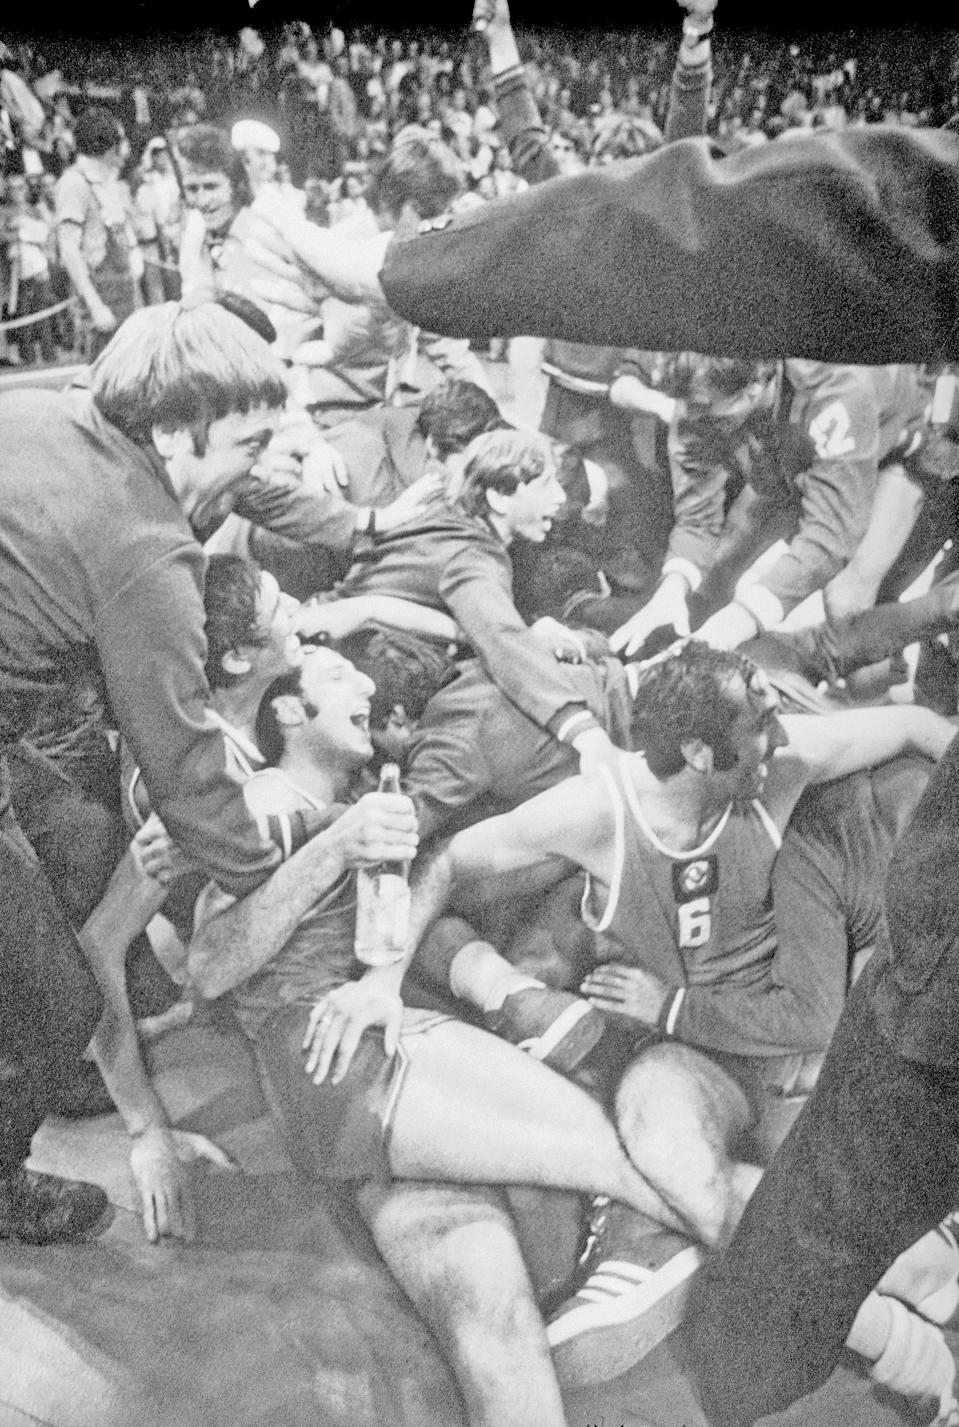 FILE - In this Sept. 10, 1972, file photo, Soviet players and supporters join in a joyous melee on the floor of the Munich Basketball Stadium, in Munich, after the Soviet team scored a 51-50 victory over the United States in the gold medal game of the Olympic basketball tournament. (AP Photo/File)